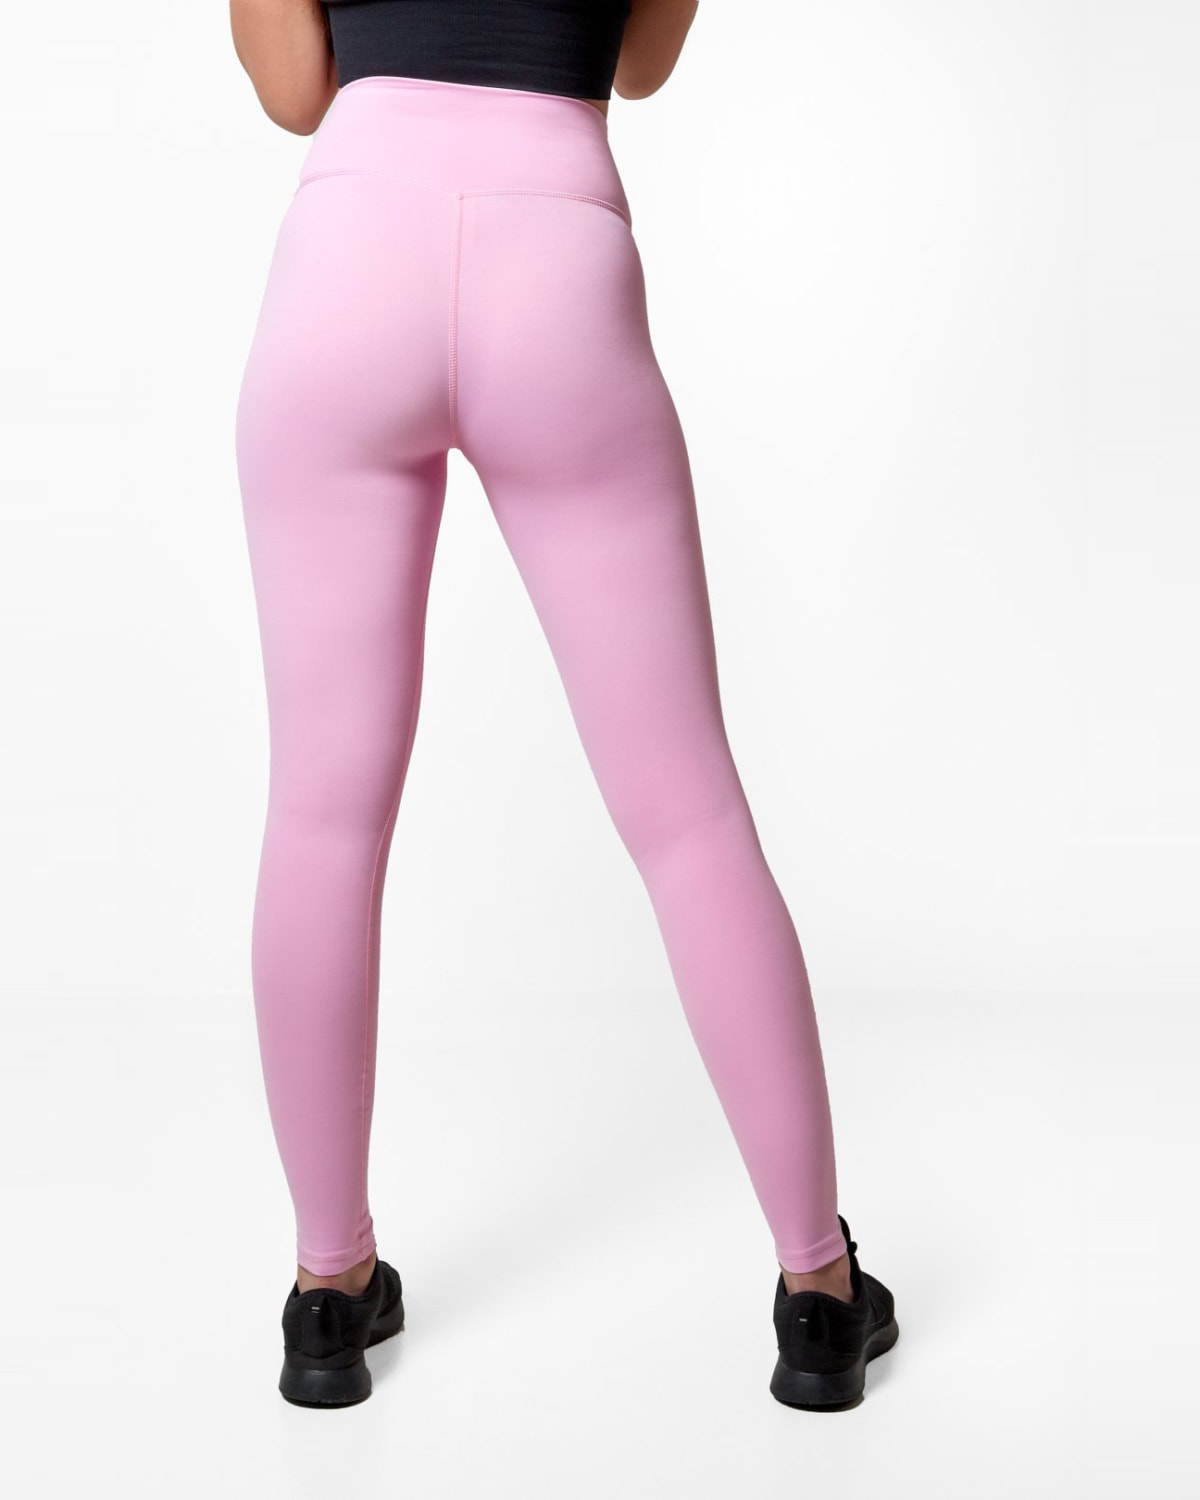 deep-pink-essential-tights_1953_2000x